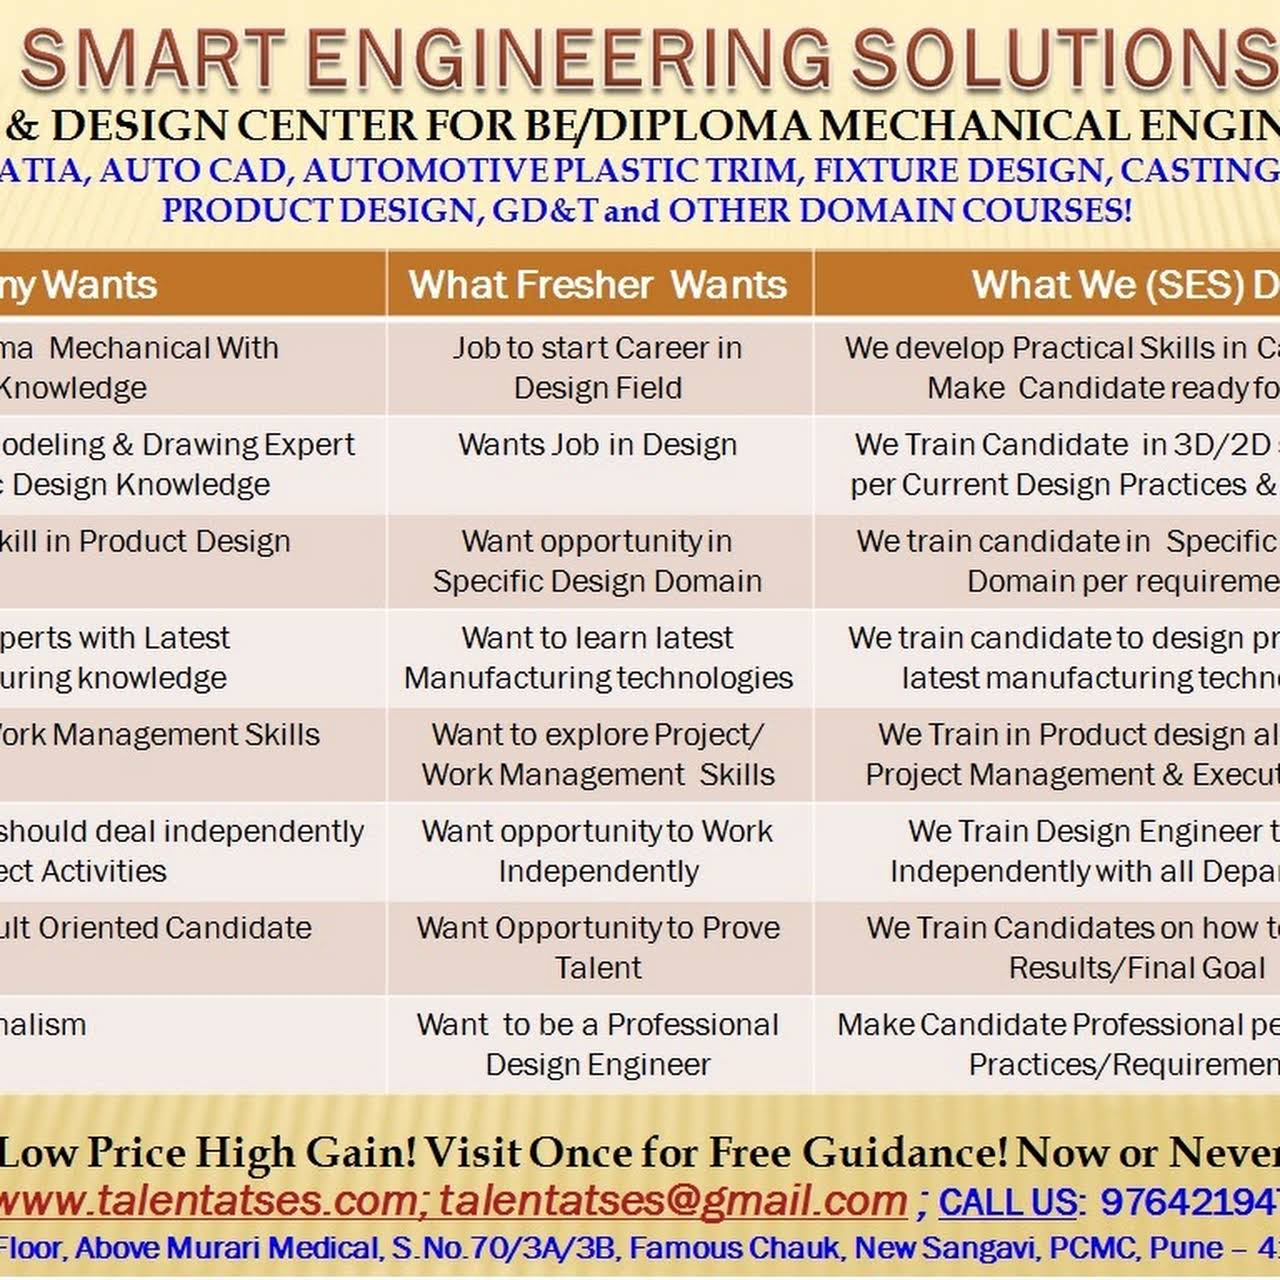 CAD CAM Institute Smart Engineering Solutions New Sangavi